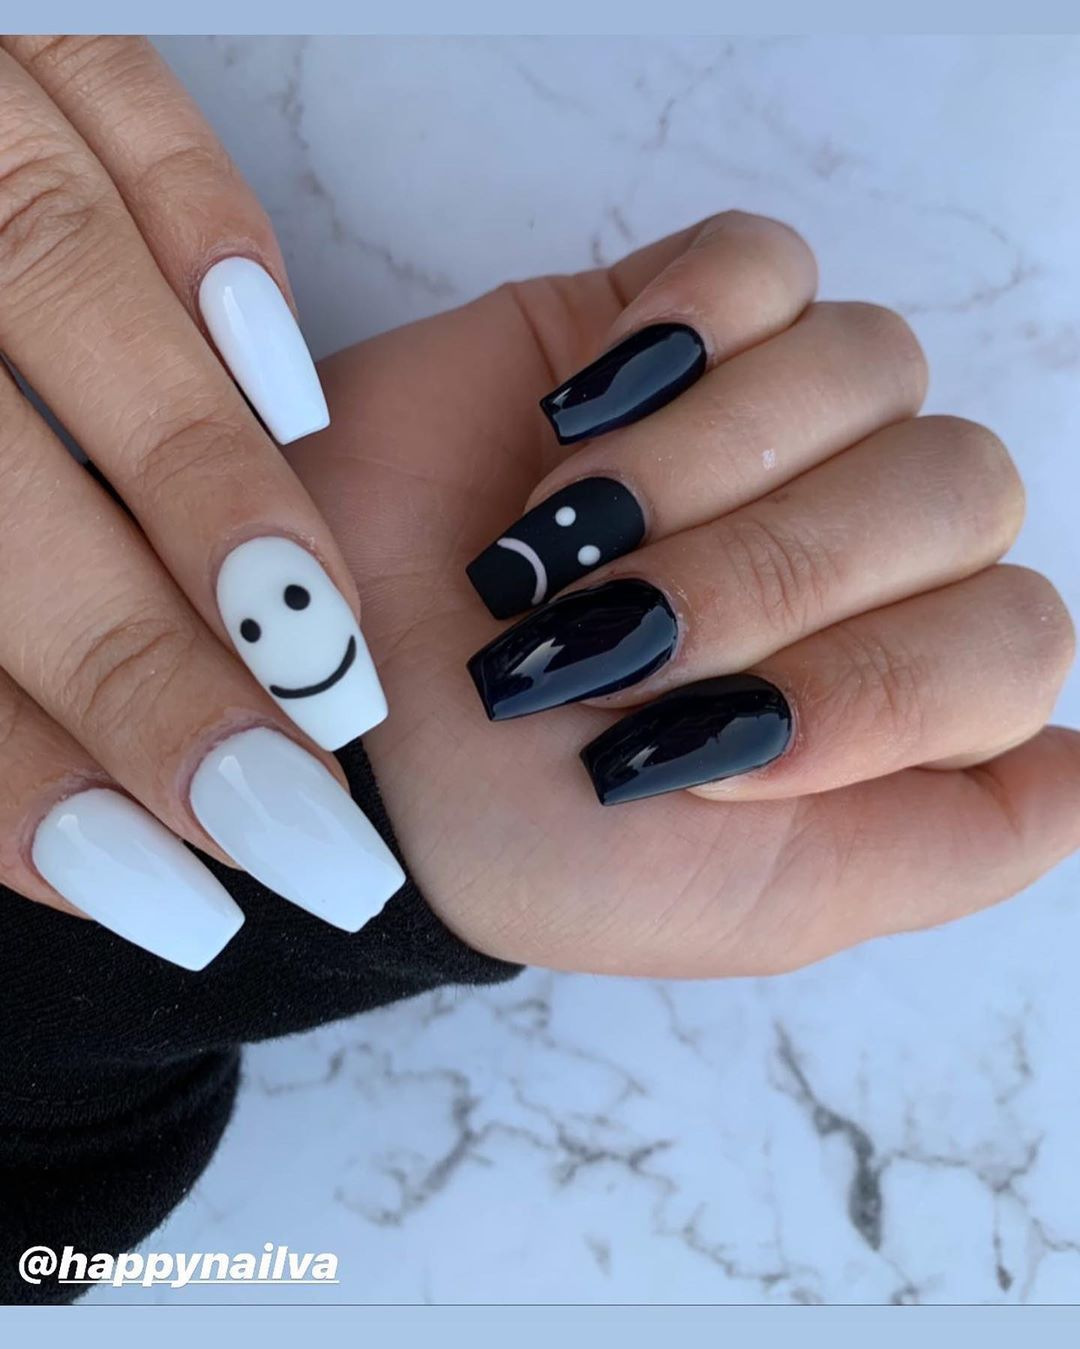 Happy Nails Leesburg On Instagram Emojis Face Of Black And White Nails Done By Tiffany Happynai In 2020 Black Acrylic Nails Happy Nails Acrylic Nails Coffin Short